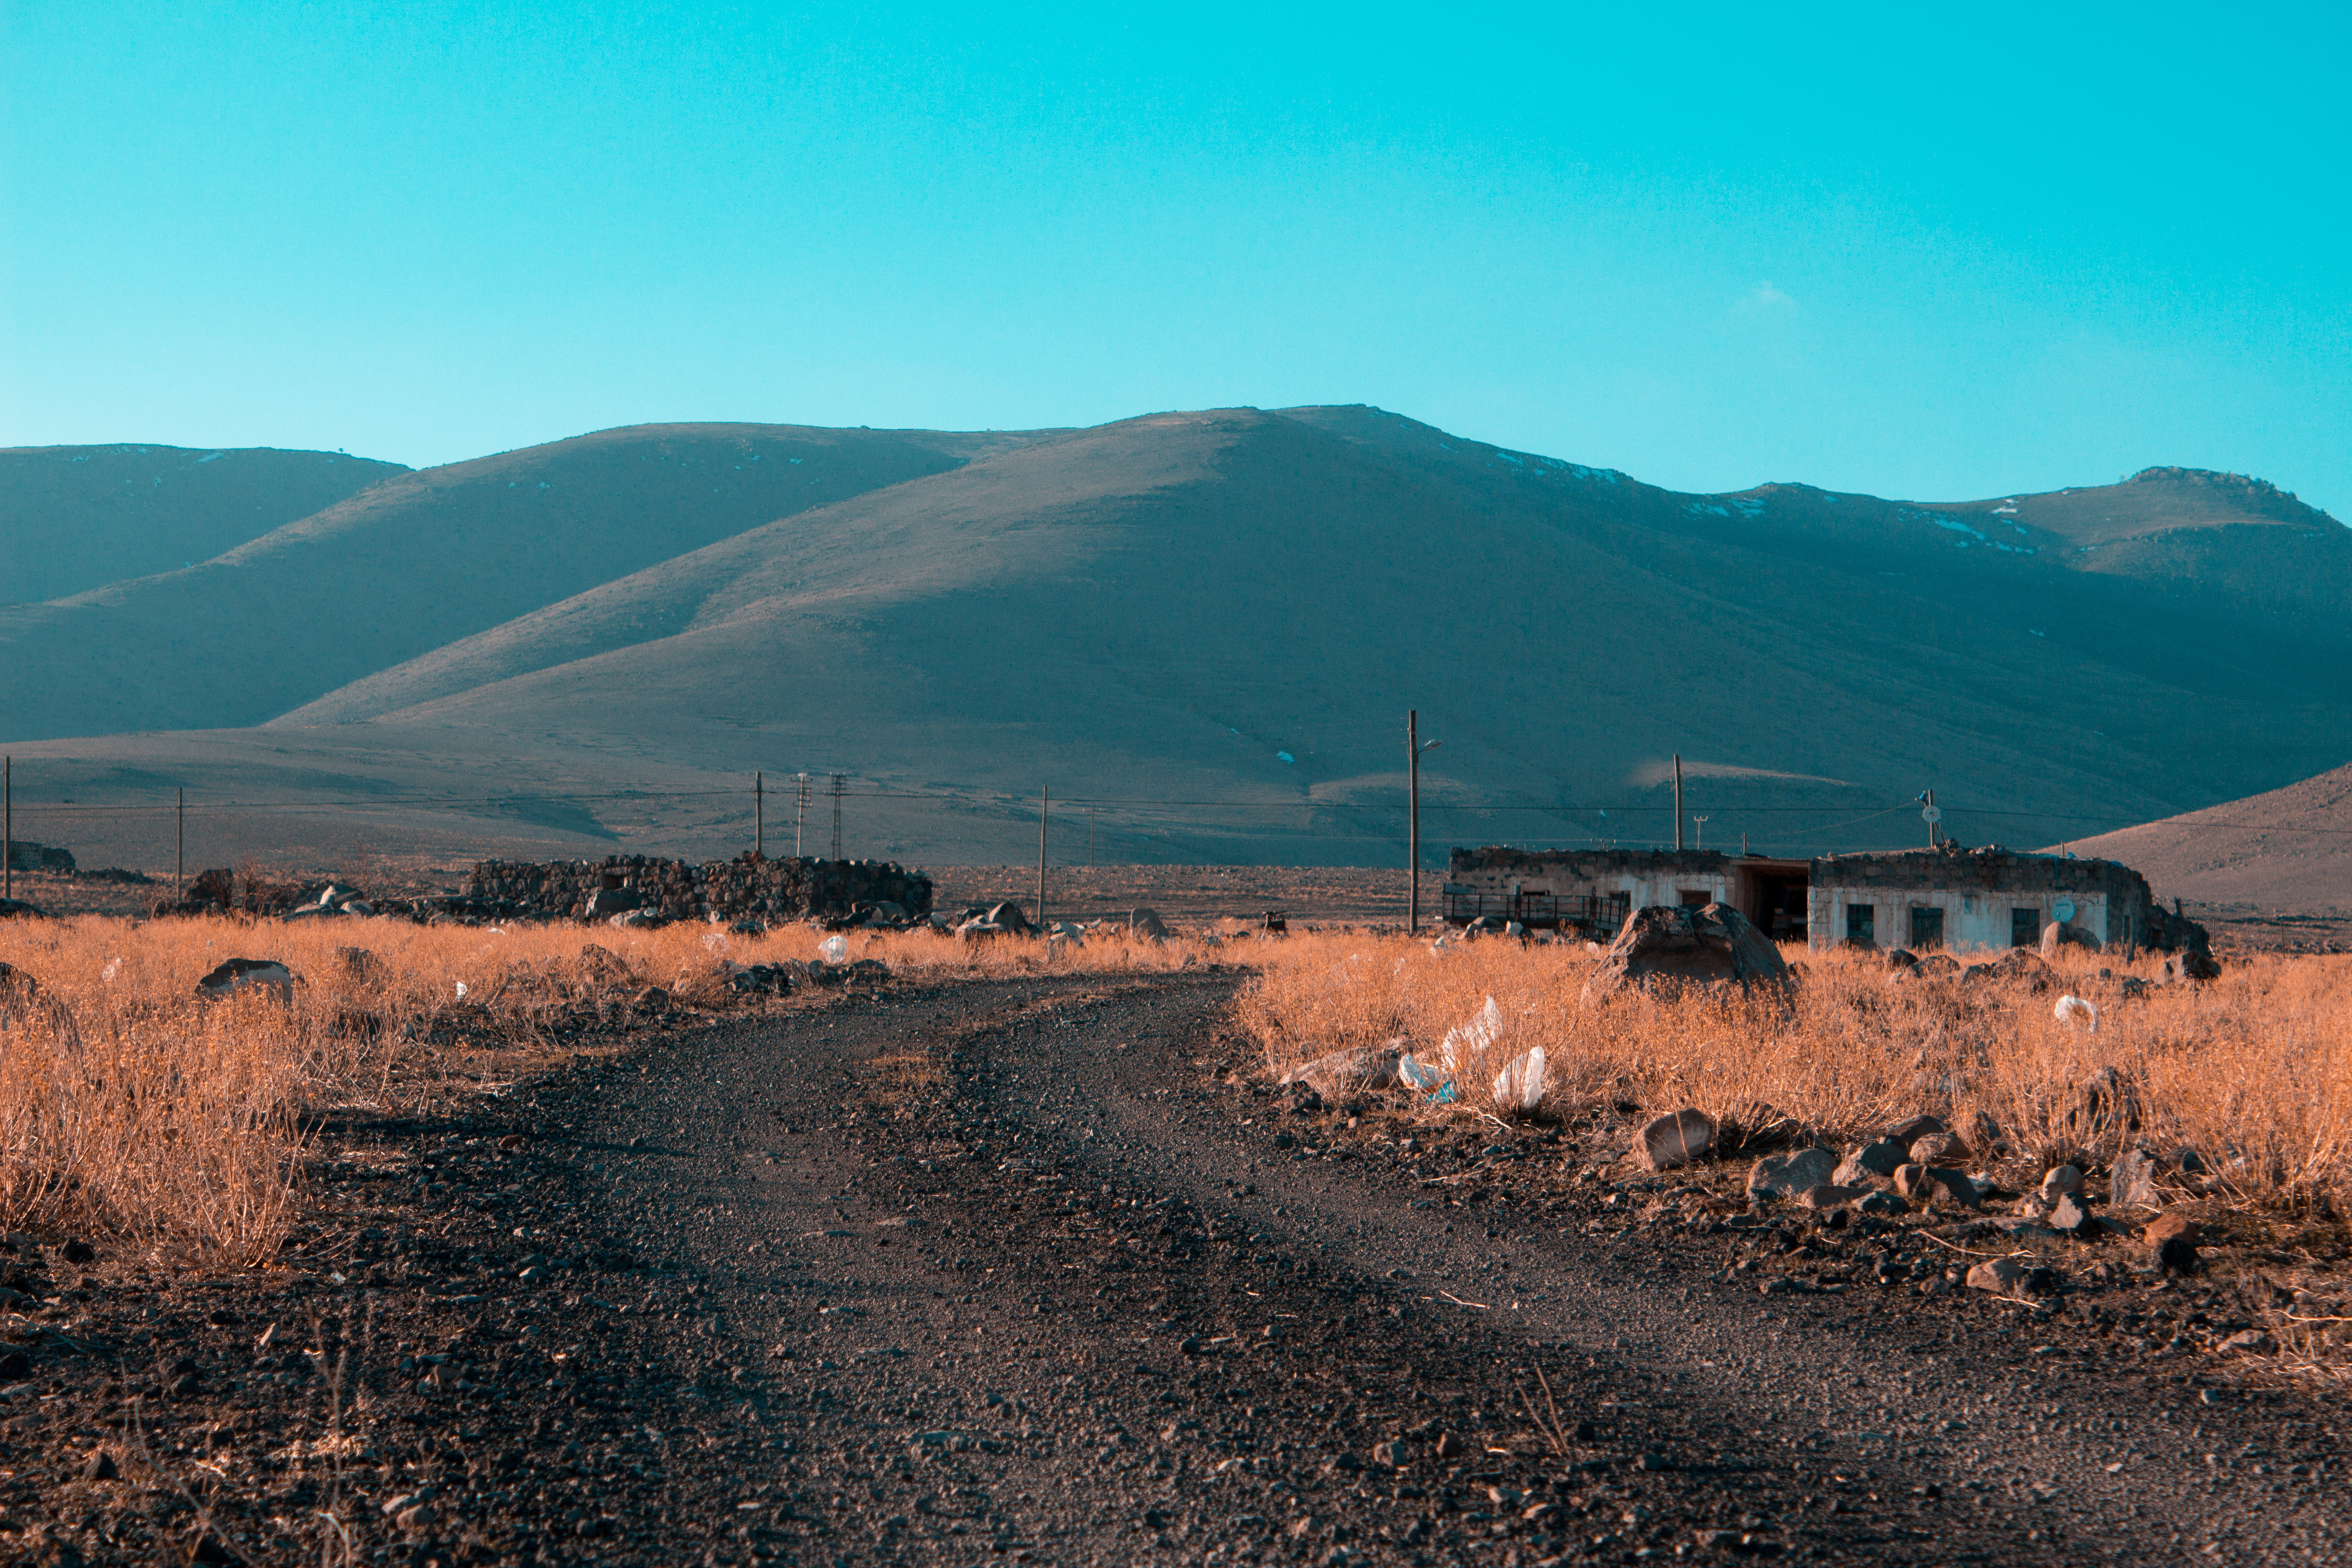 Gray Road in Between Brown Grass Field With Mountains Background, Daylight, Outdoors, Travel, Soil, HQ Photo